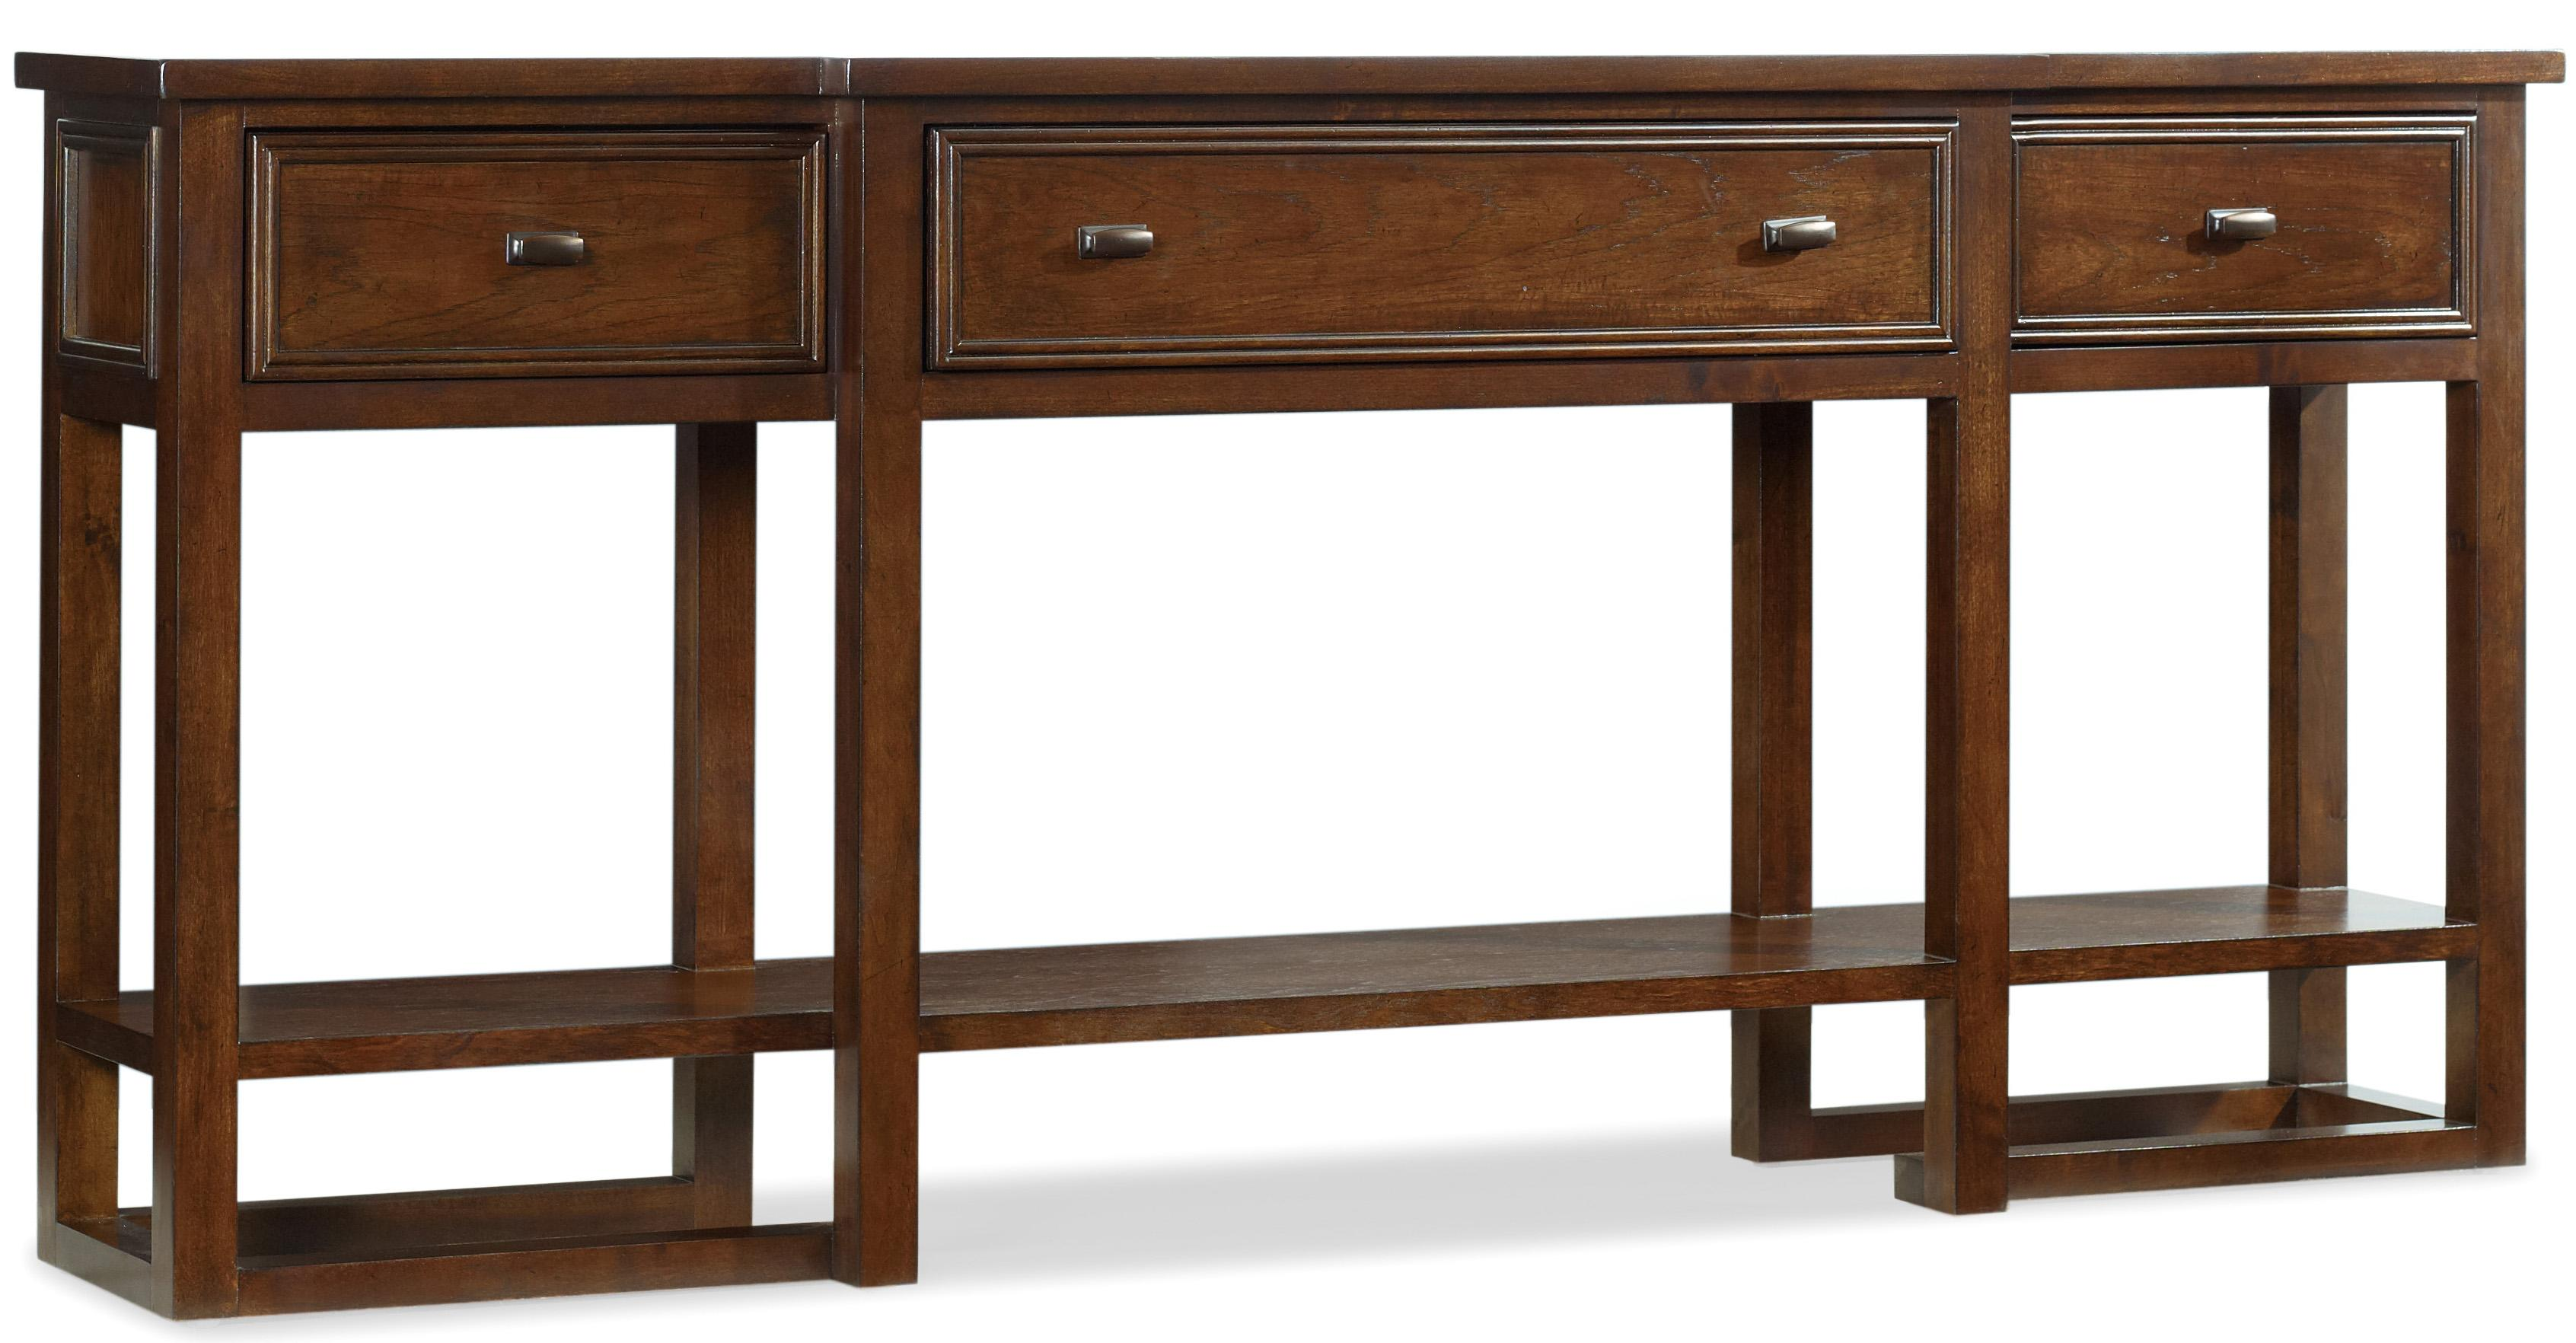 console table 72 inches long – topnetwork.club